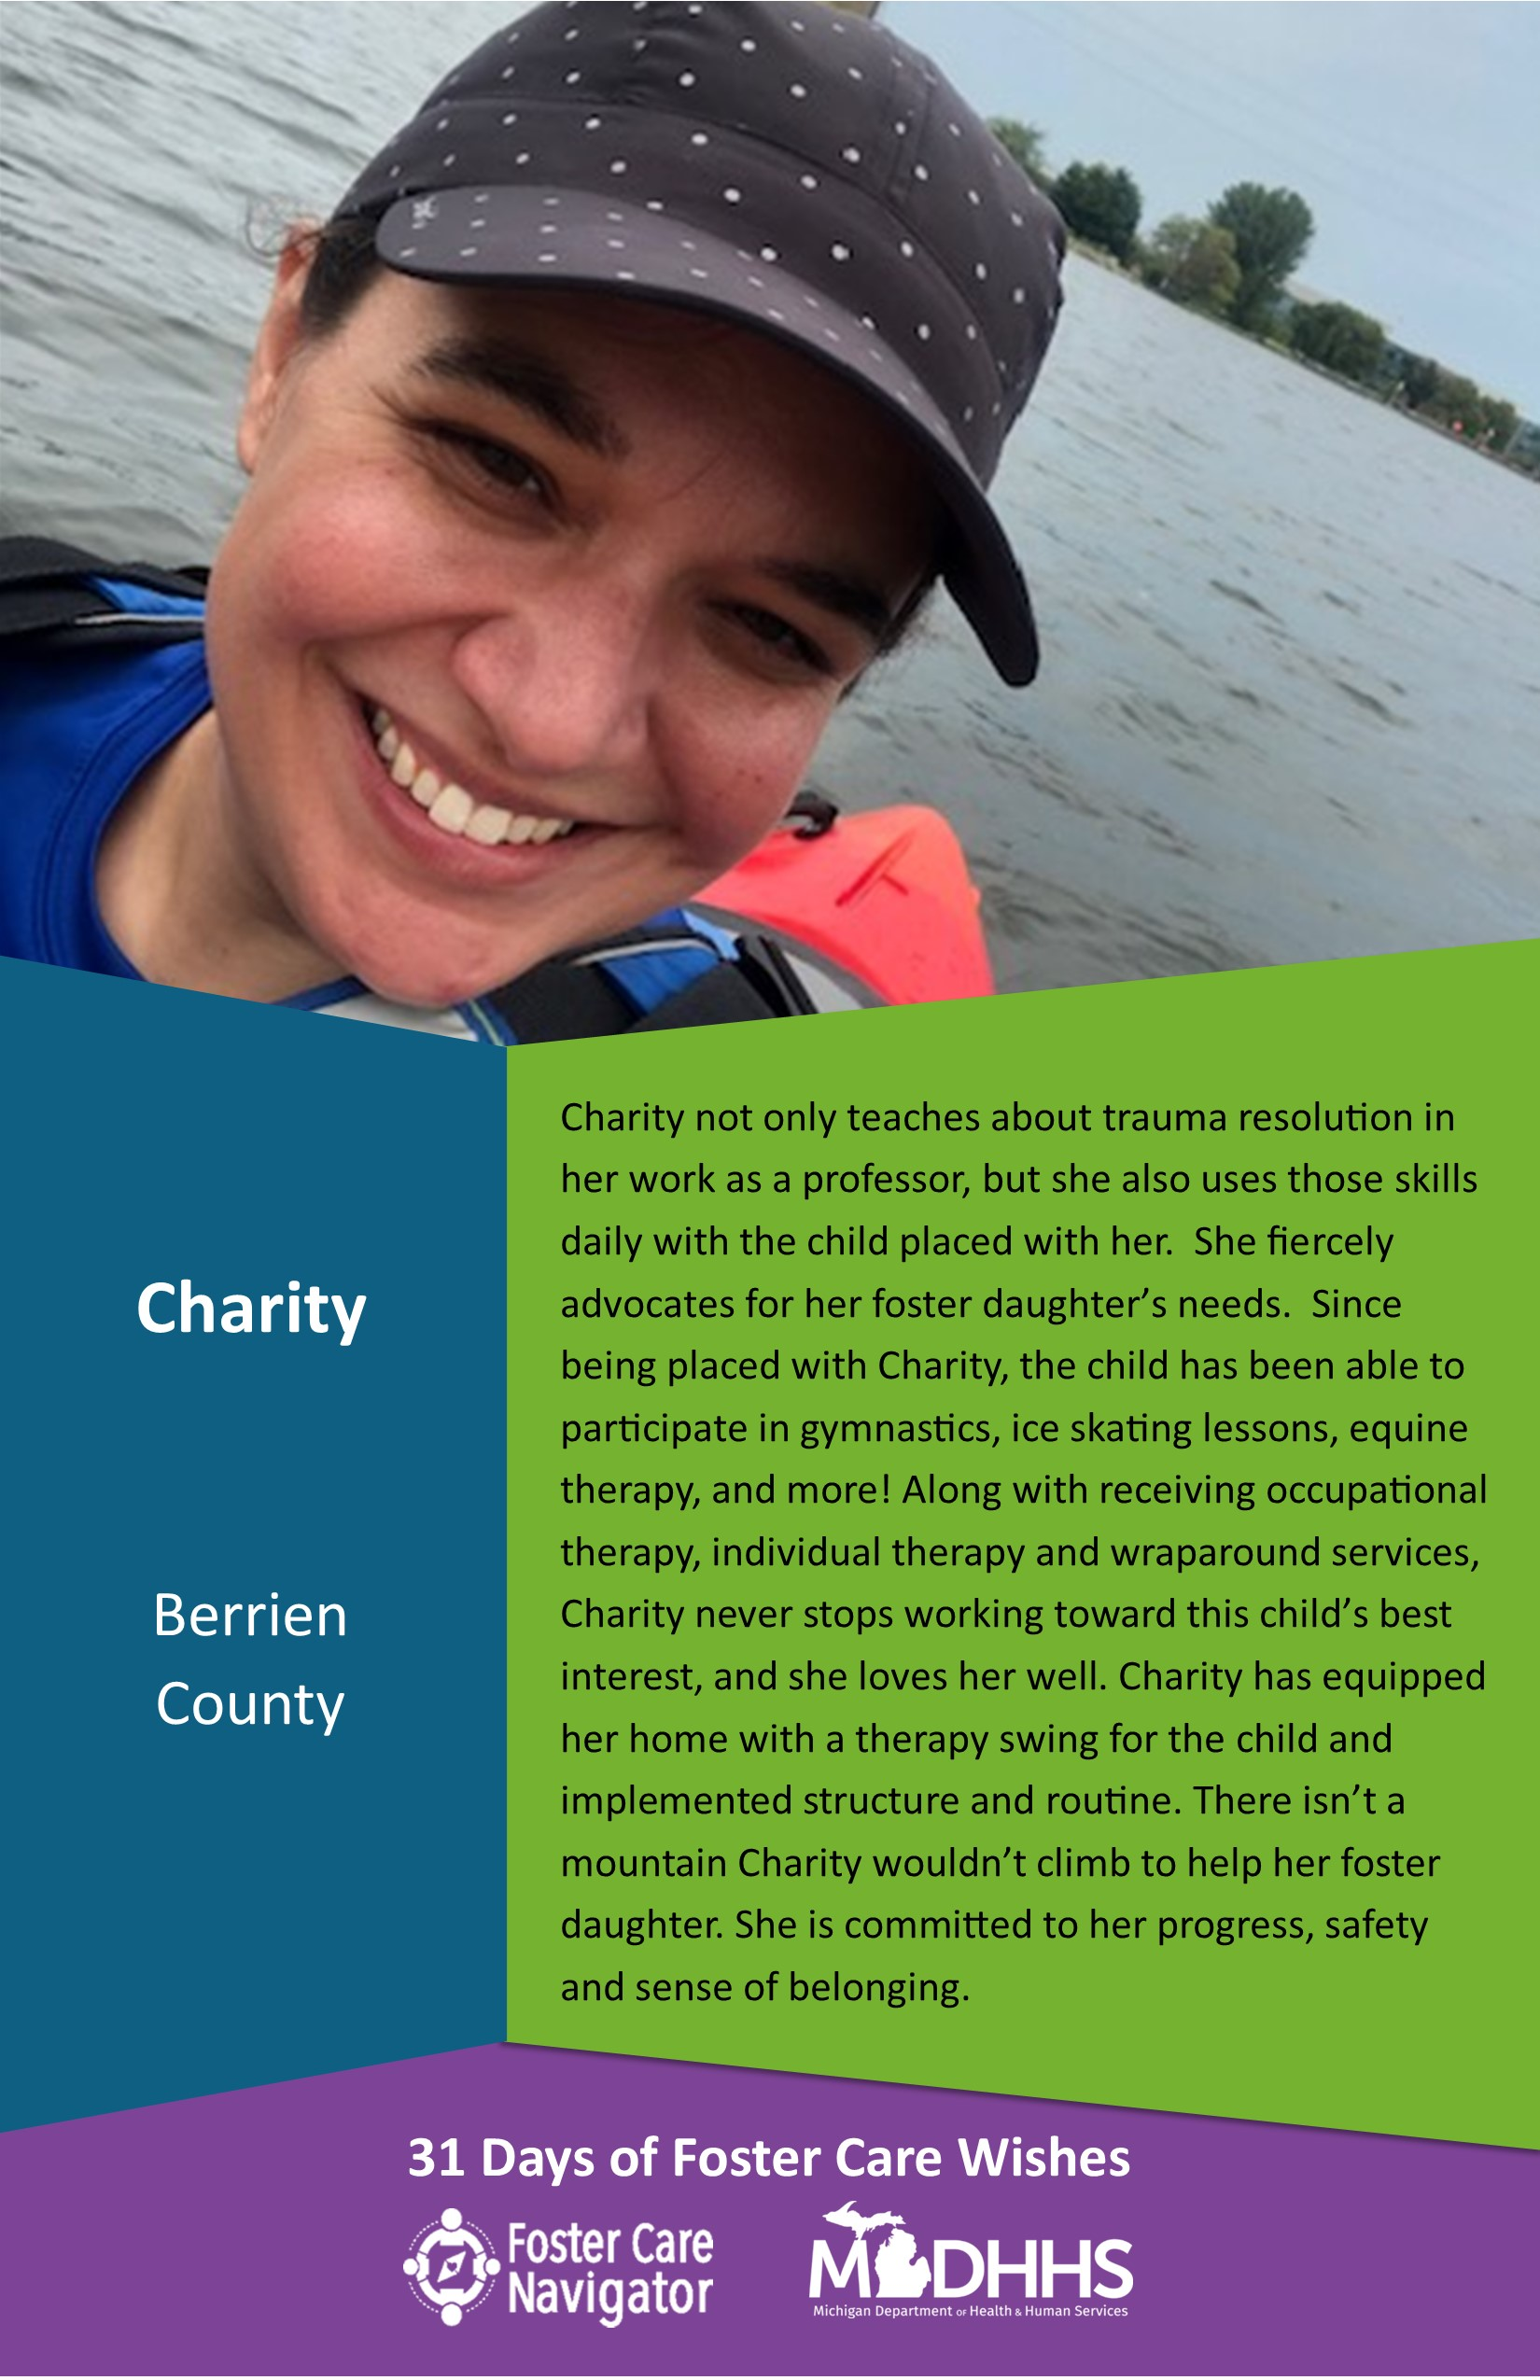 This full page feature includes all of the text listed in the body of this blog post as well as a photo of Charity. The background is blue on the left, green on the right, and purple at the bottom of the page where the logos are located.